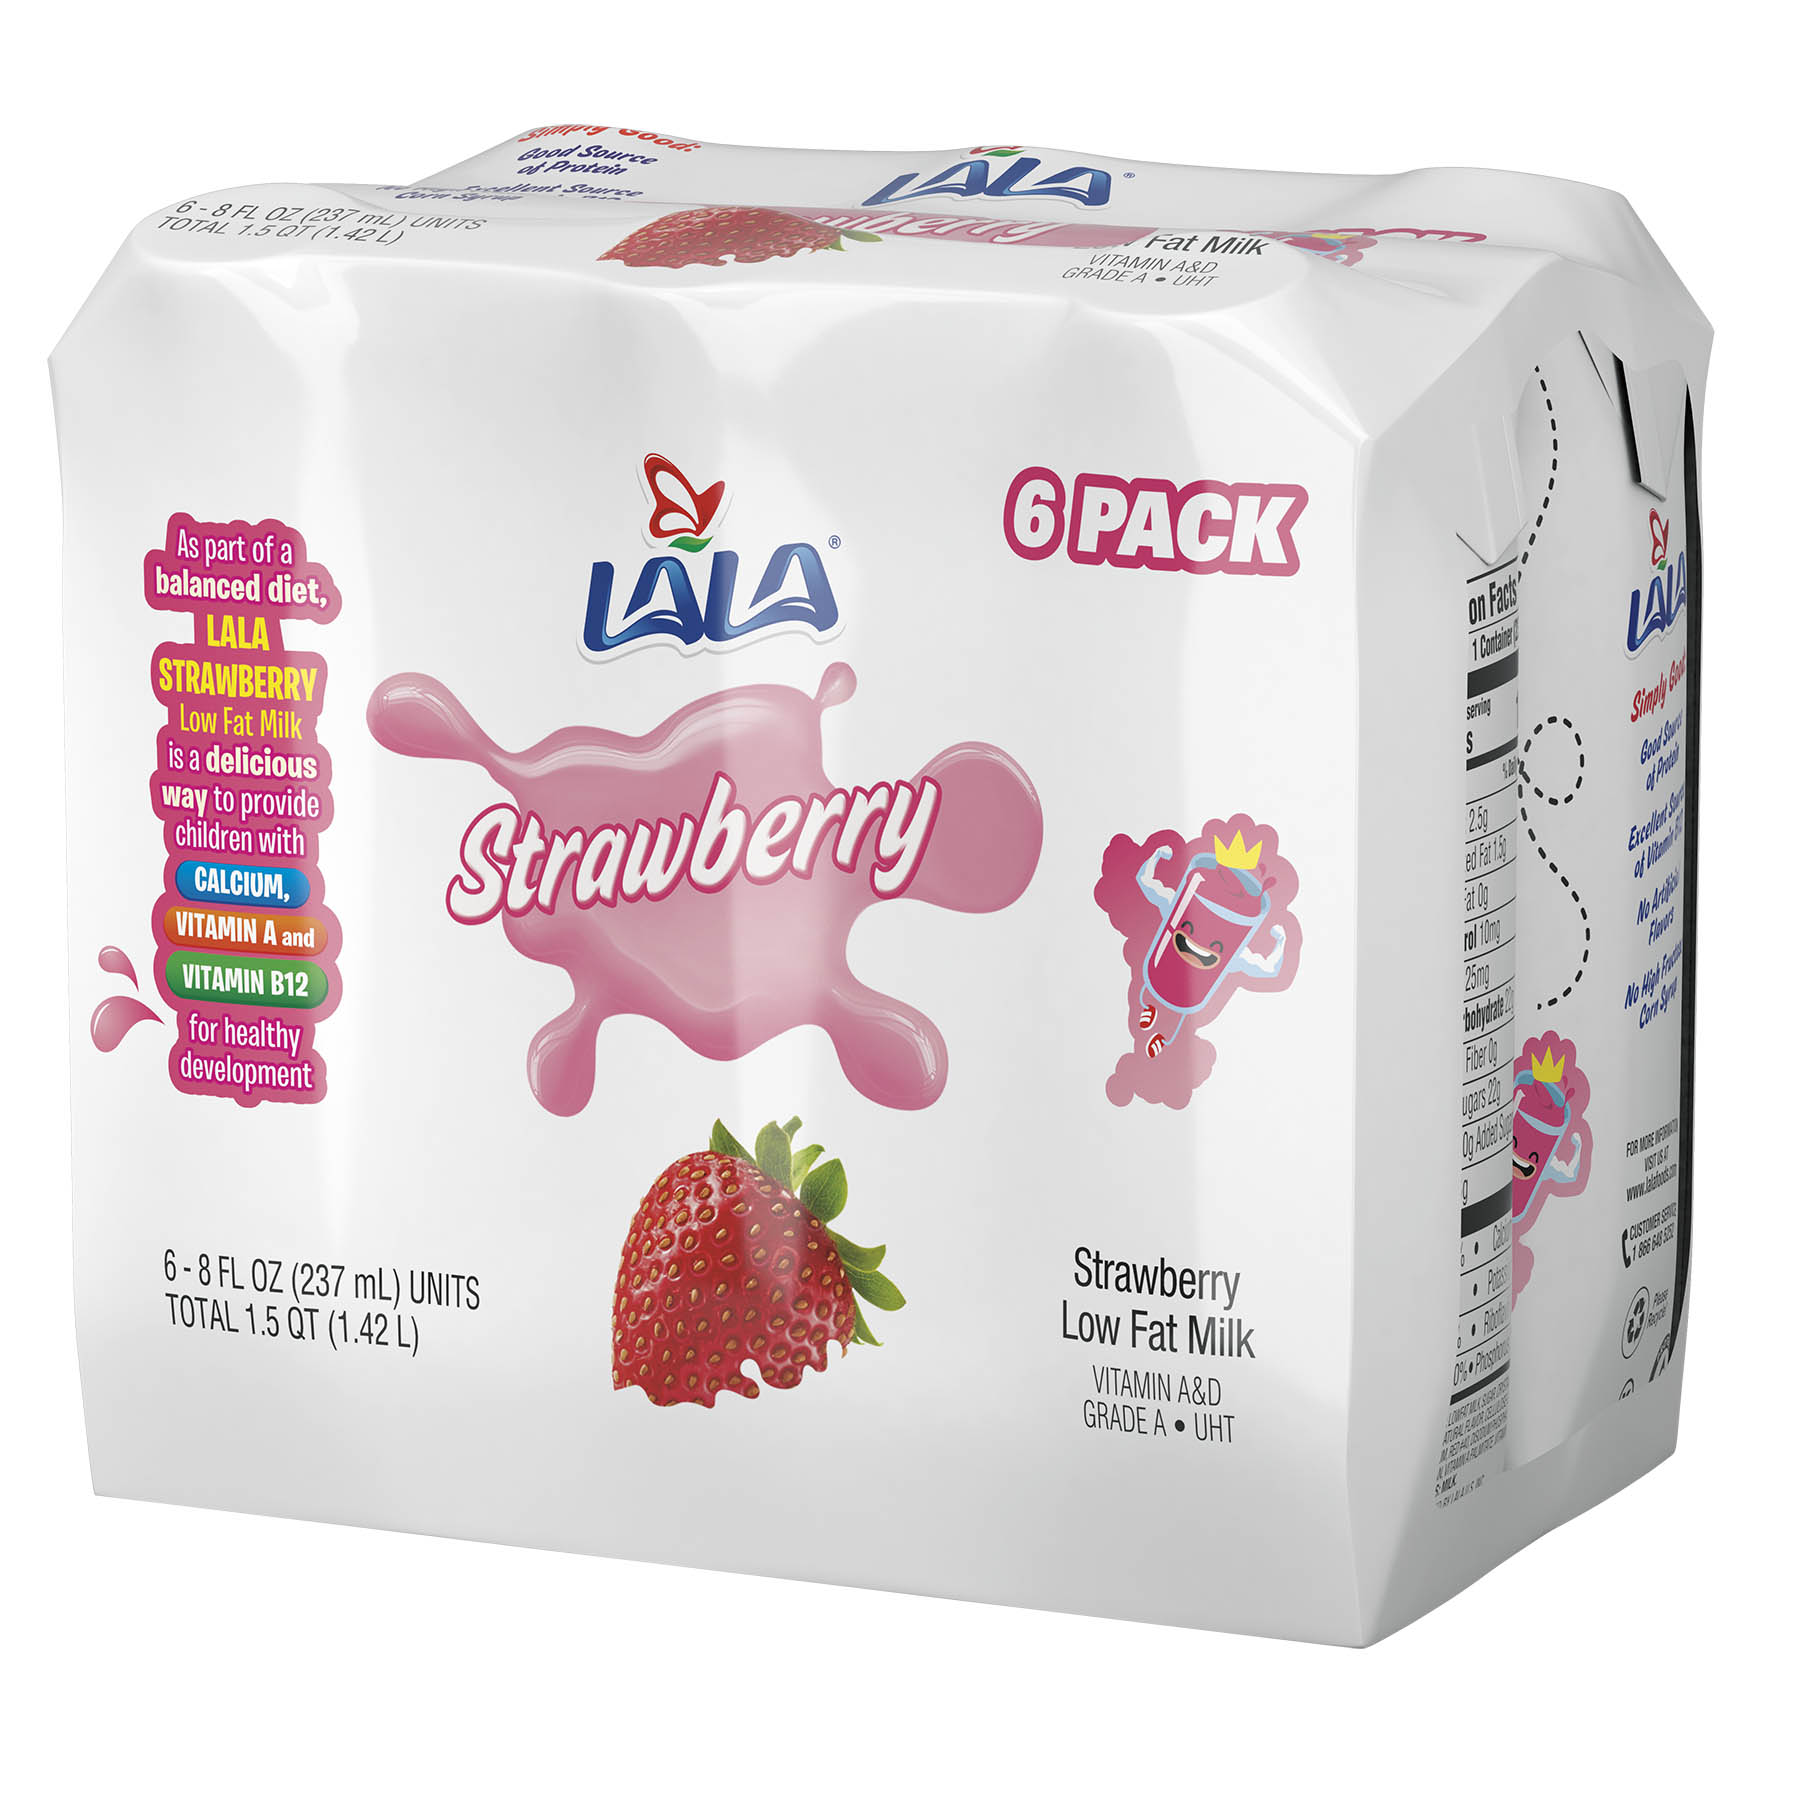 LALA UHT Strawberry Milk Drinks, Low Fat, Good Source of Calcium and Vitamin D, 8.25-ounce, 6 Pack